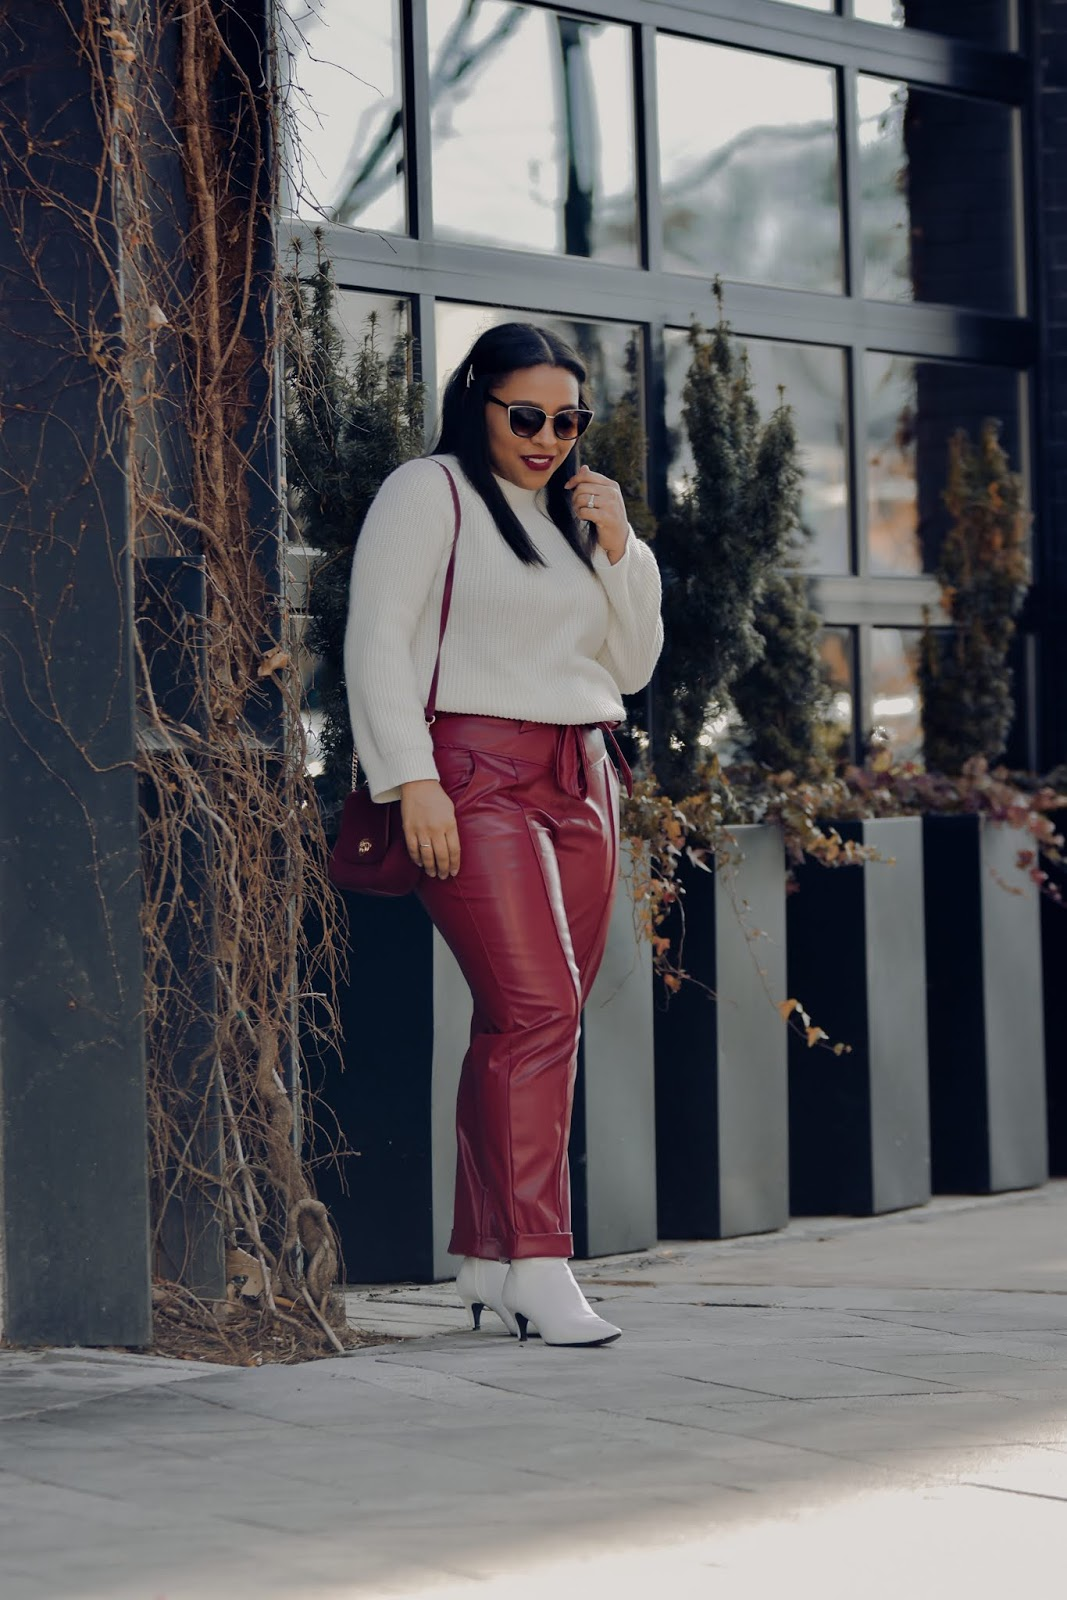 shein, shein clothing reviews, faux leather pants, high waist pants, winter outfit ideas, chic outfit ideas, winter whitesJPG